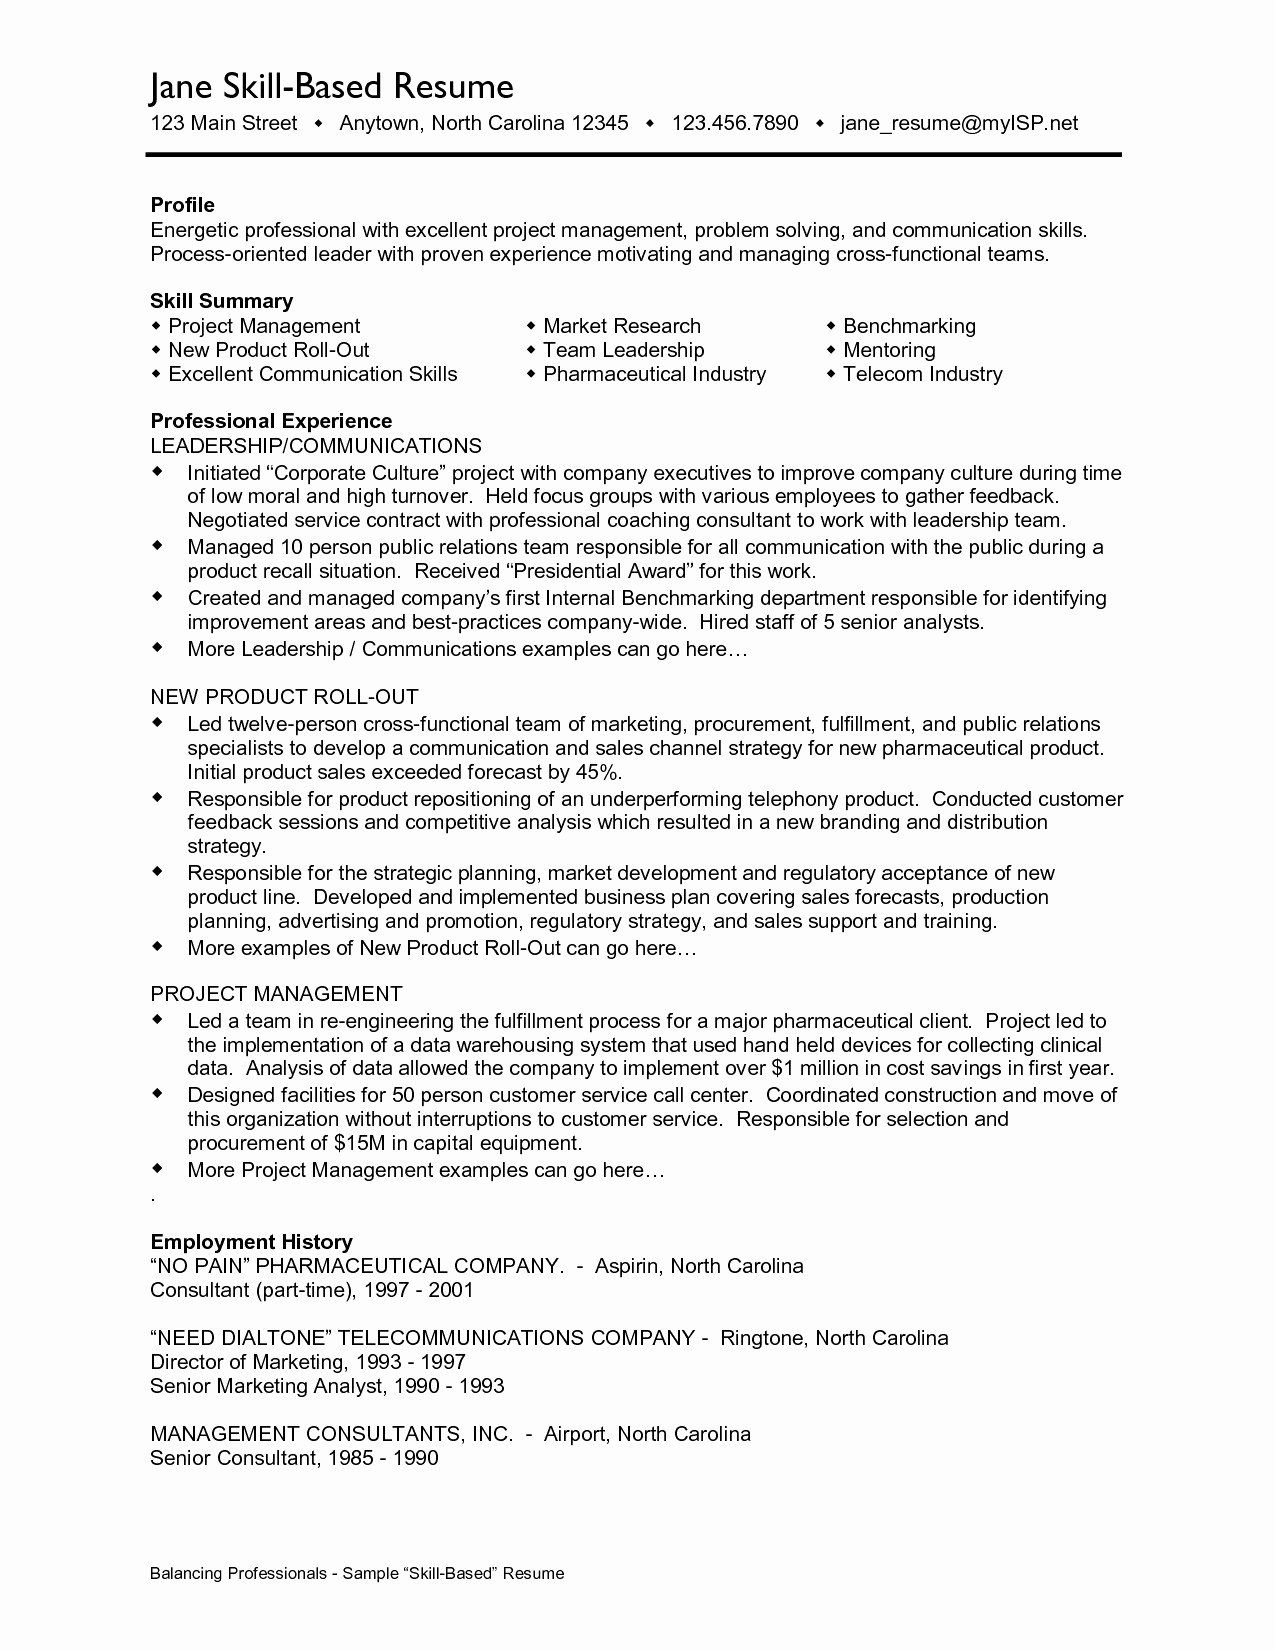 Business Collaboration Letter Sample Awesome Business Collaboration Letter Template Samples Resume Skills Section Resume Skills Resume Objective Examples